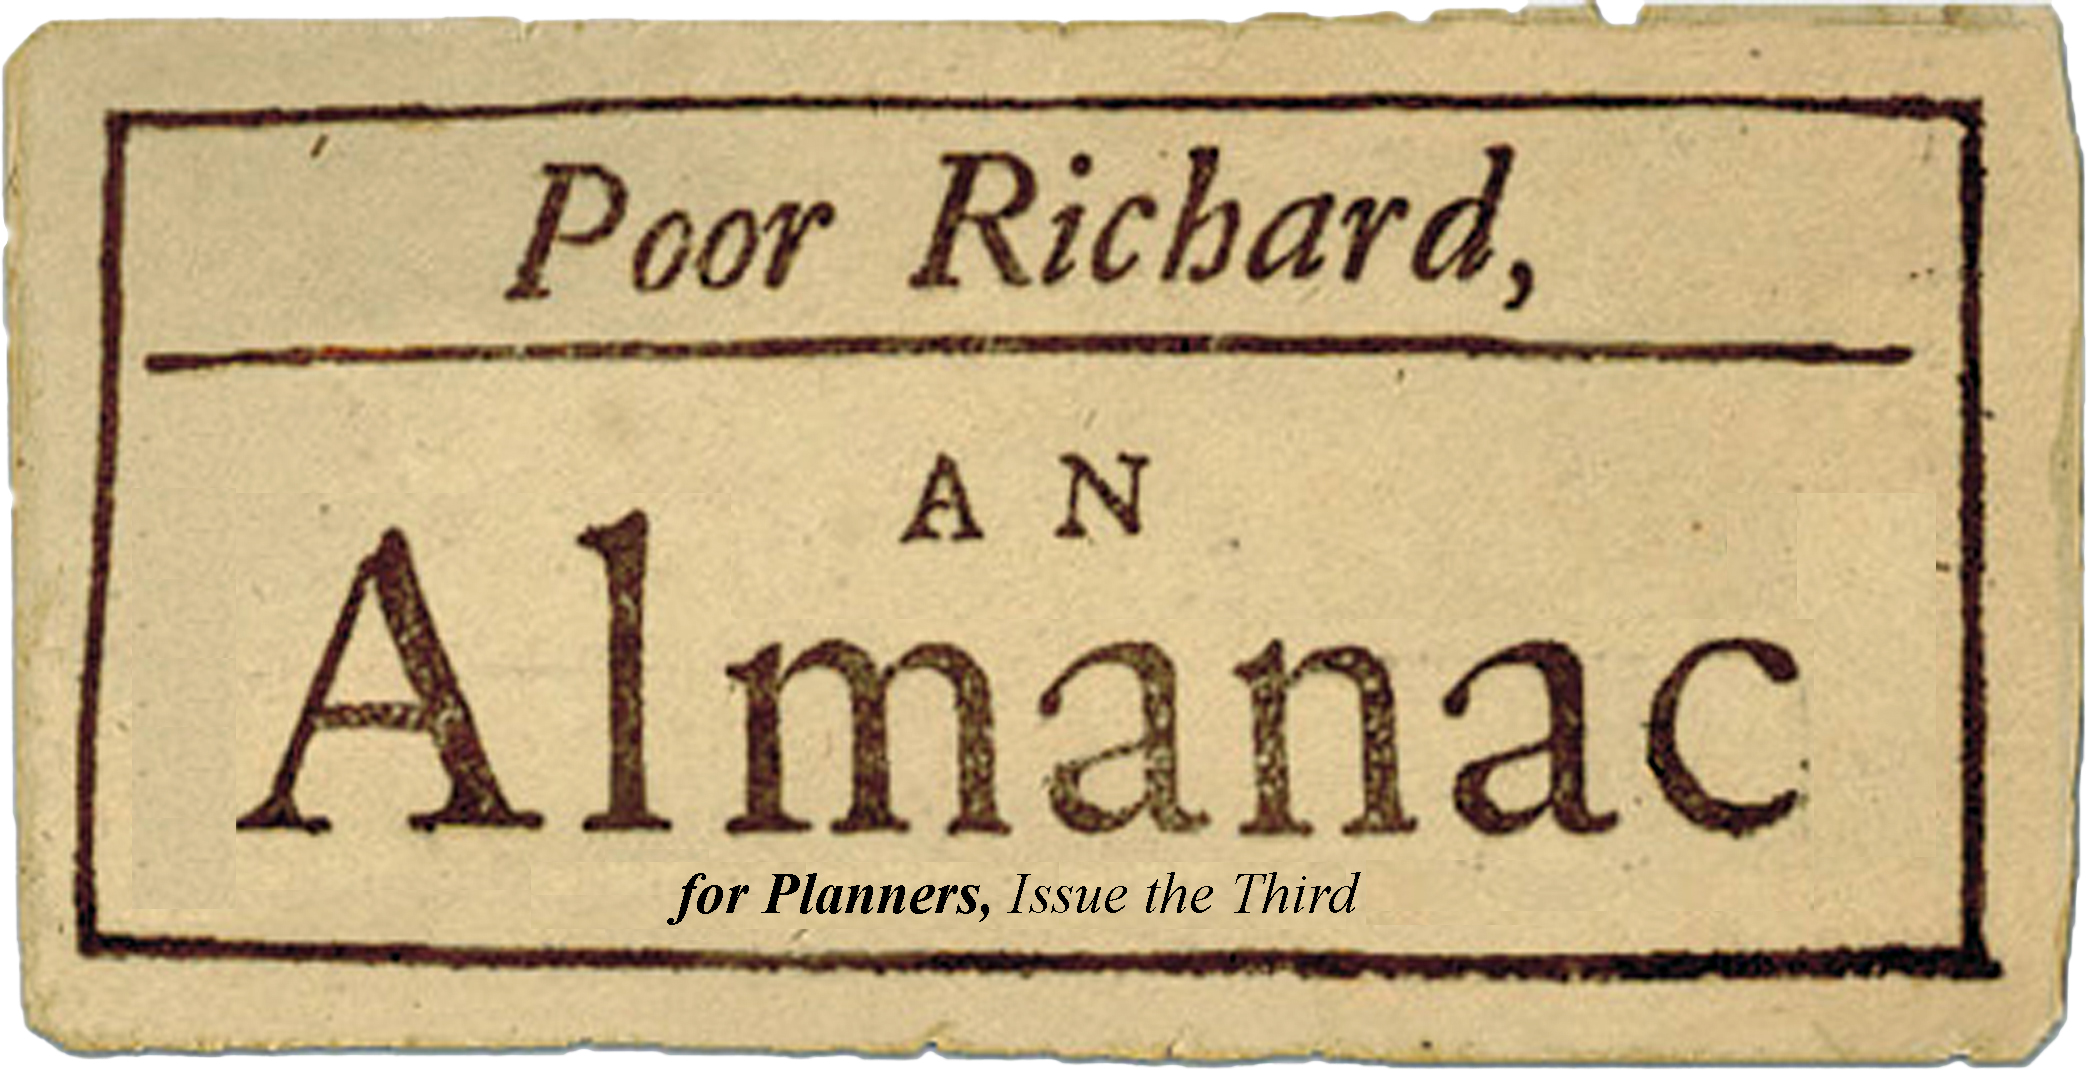 'Poor Richard's Almanack' published by Benjamin Franklin under the pseudonym Richard Saunders